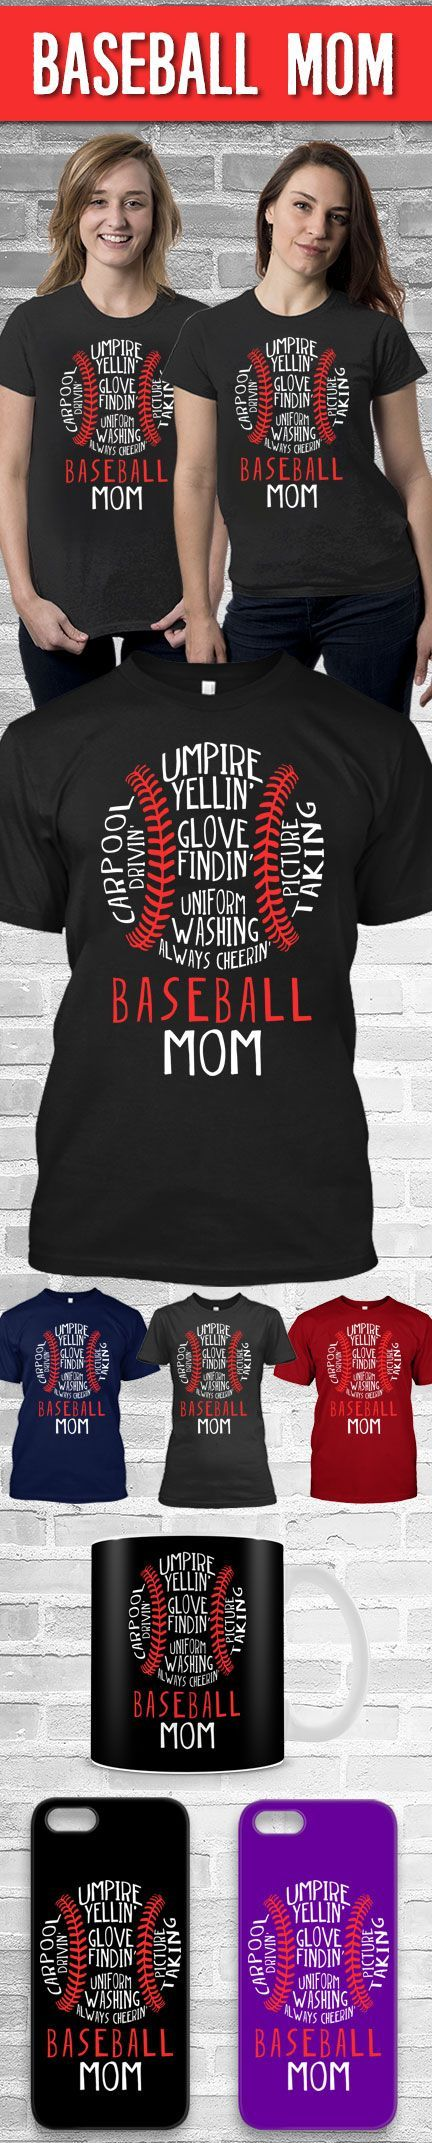 Baseball Mom Shirt! Click The Image To Buy It Now or Tag Someone You Want To Buy This For.  #baseball - mens white patterned shirt, mens button down shirts slim fit, mens dark red shirt *sponsored https://www.pinterest.com/shirts_shirt/ https://www.pinterest.com/explore/shirts/ https://www.pinterest.com/shirts_shirt/printed-shirts/ https://huckberry.com/store/t/category/clothing/tops/shirts